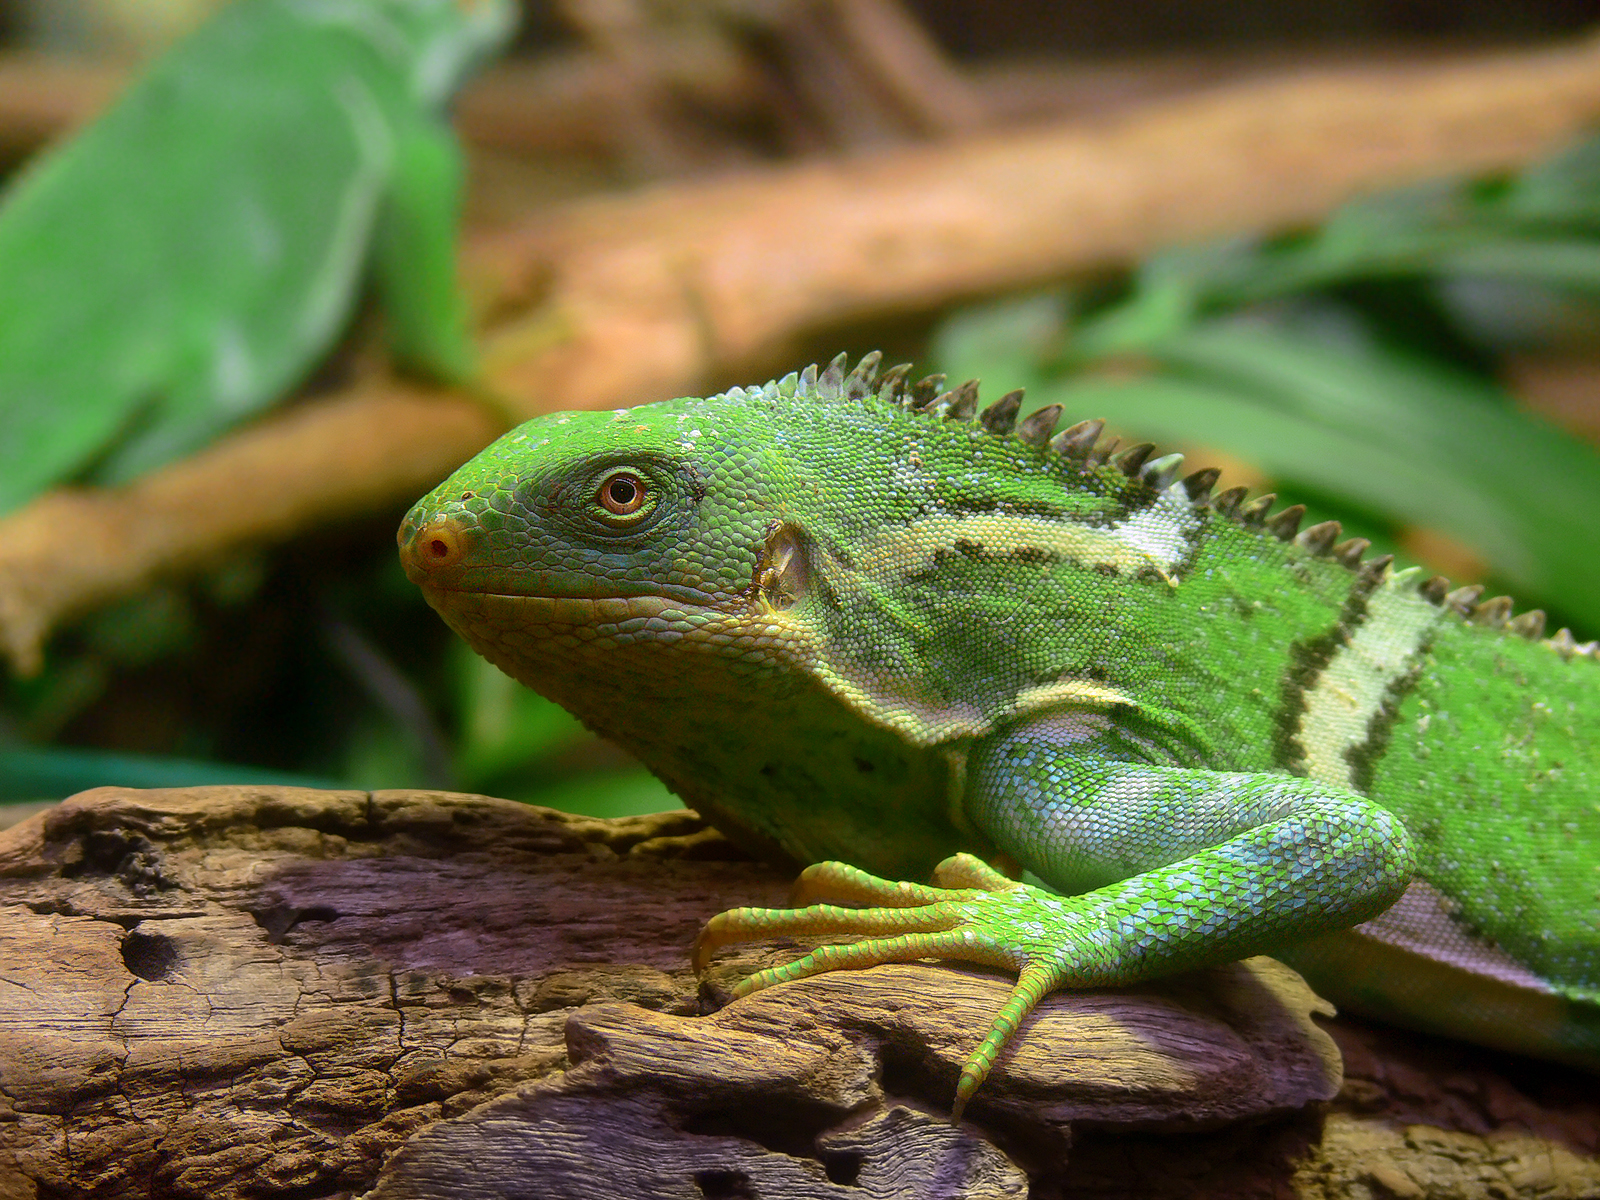 The Fiji Crested Iguana Became Known To Herpetologists Through Blue Lagoon